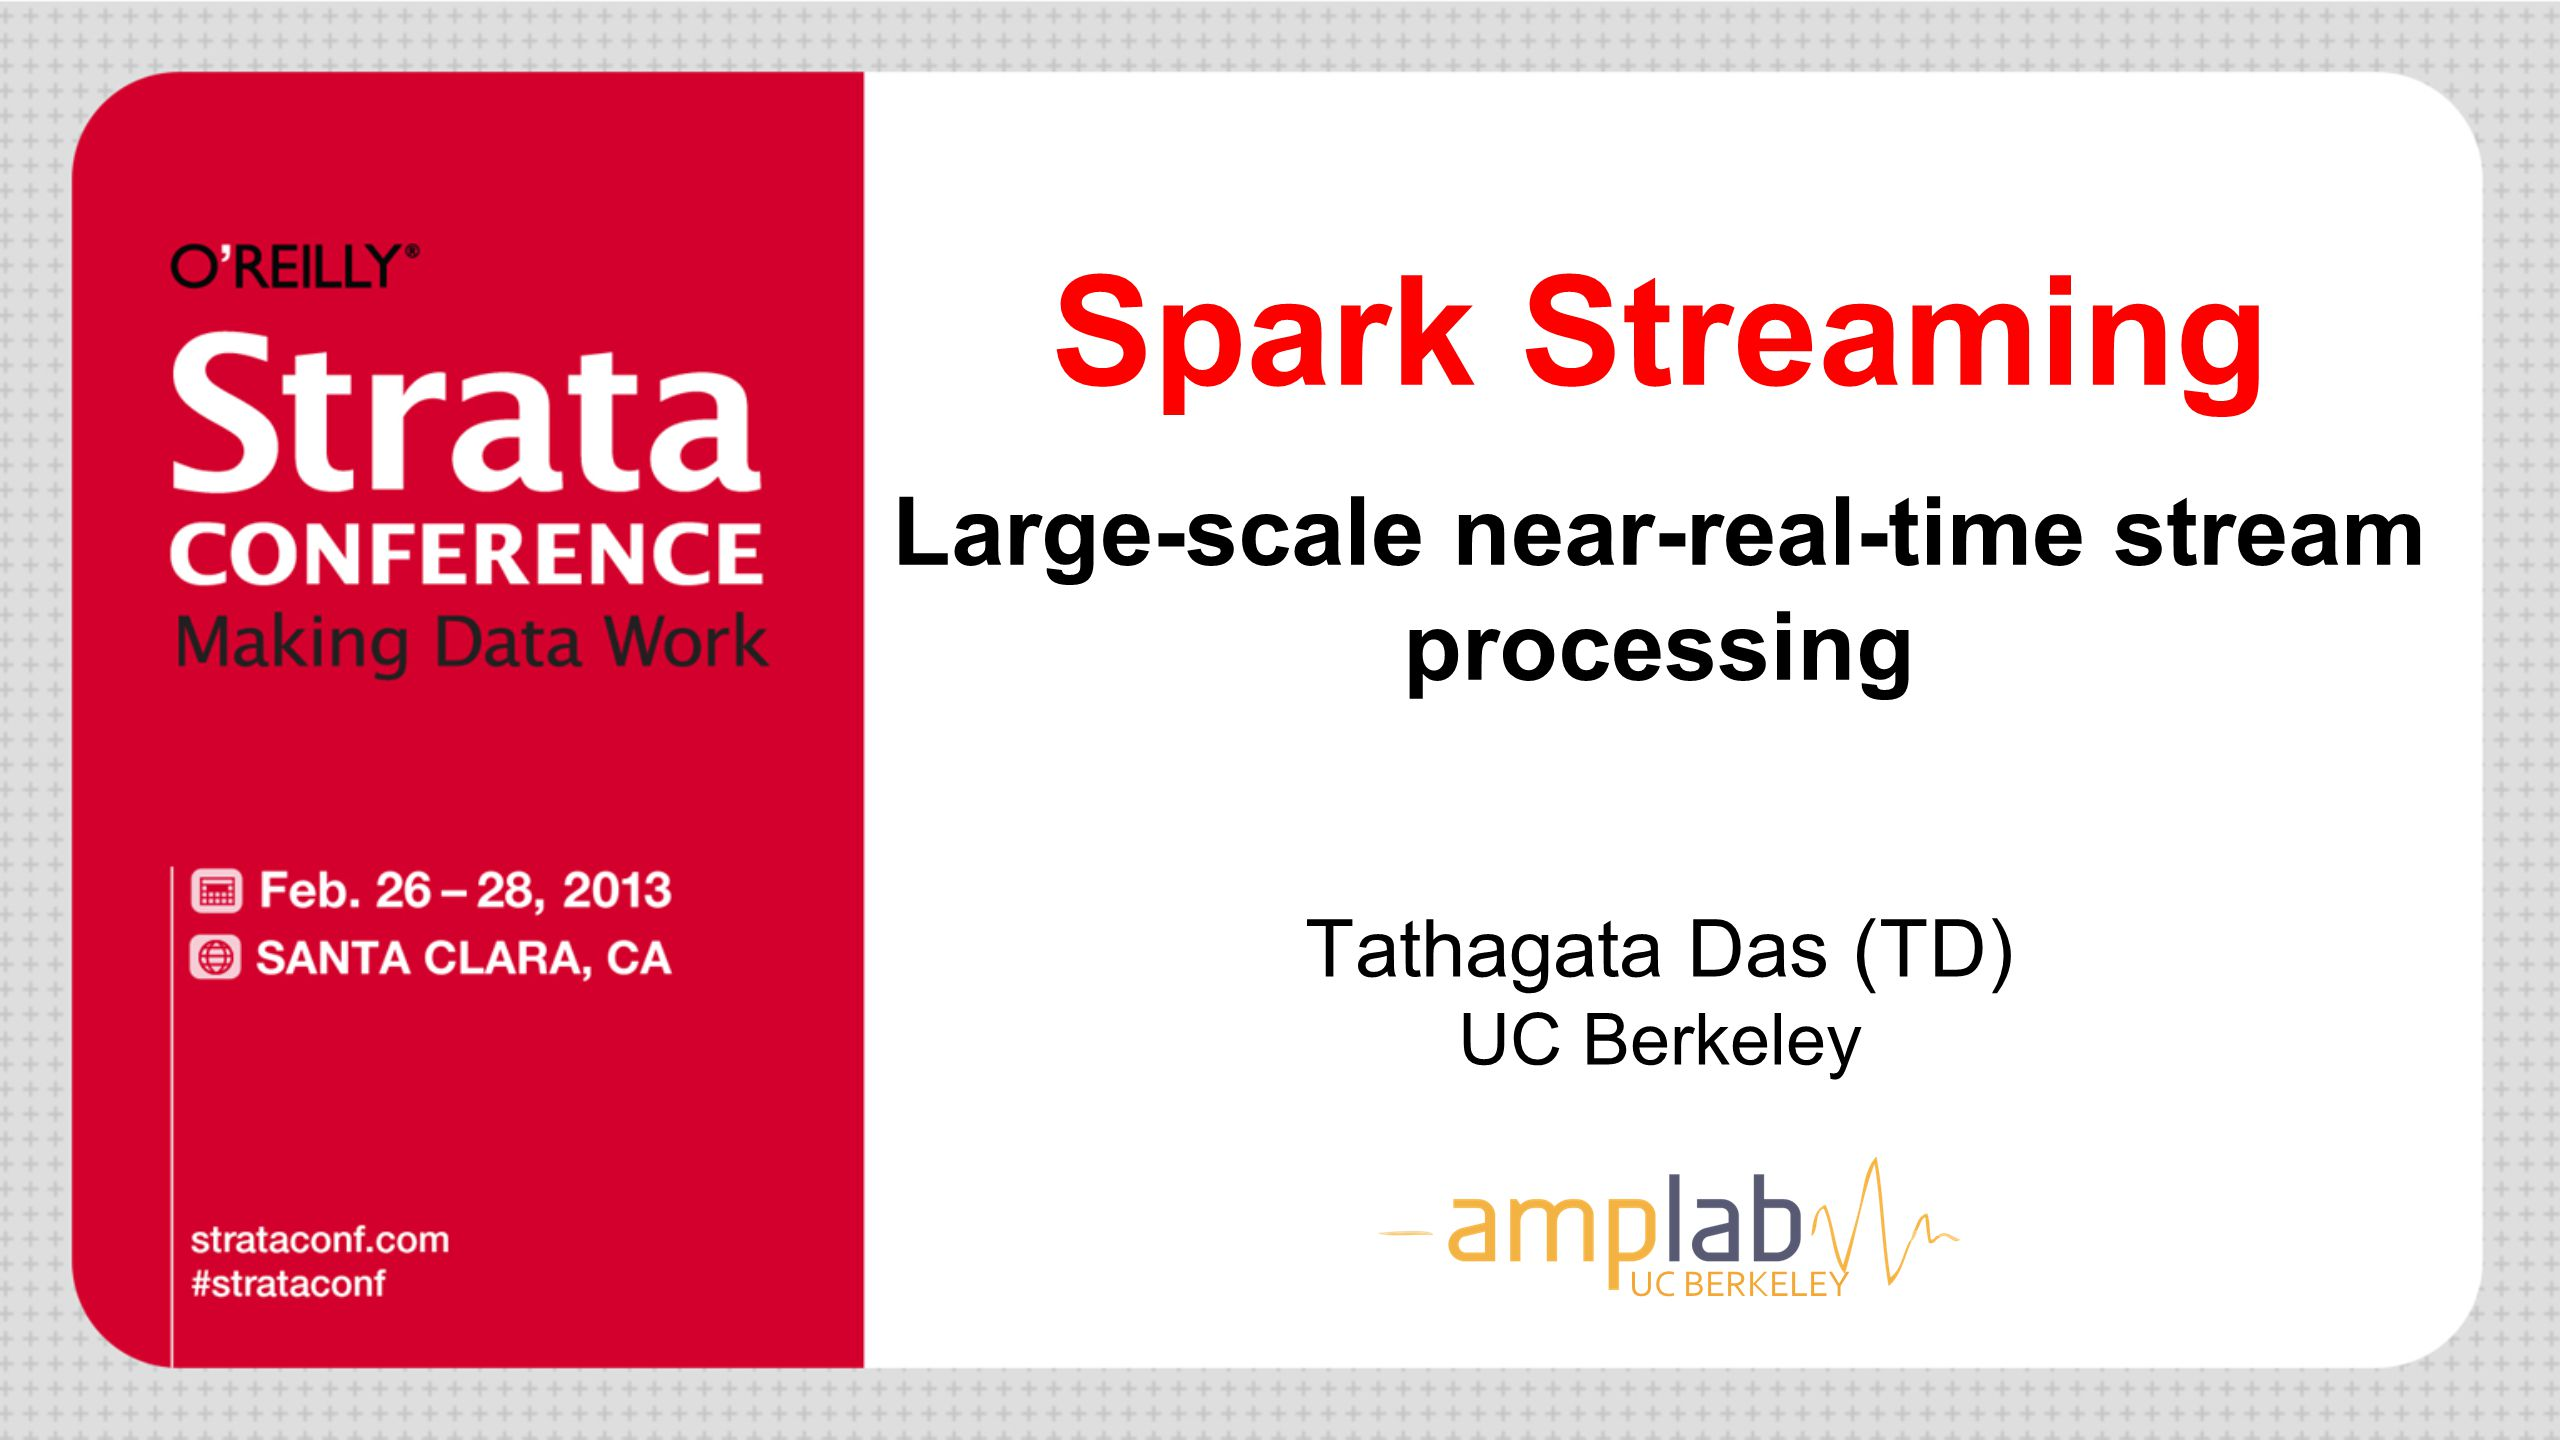 Spark Streaming Large-scale near-real-time stream processing Tathagata Das (TD) UC Berkeley UC BERKELEY